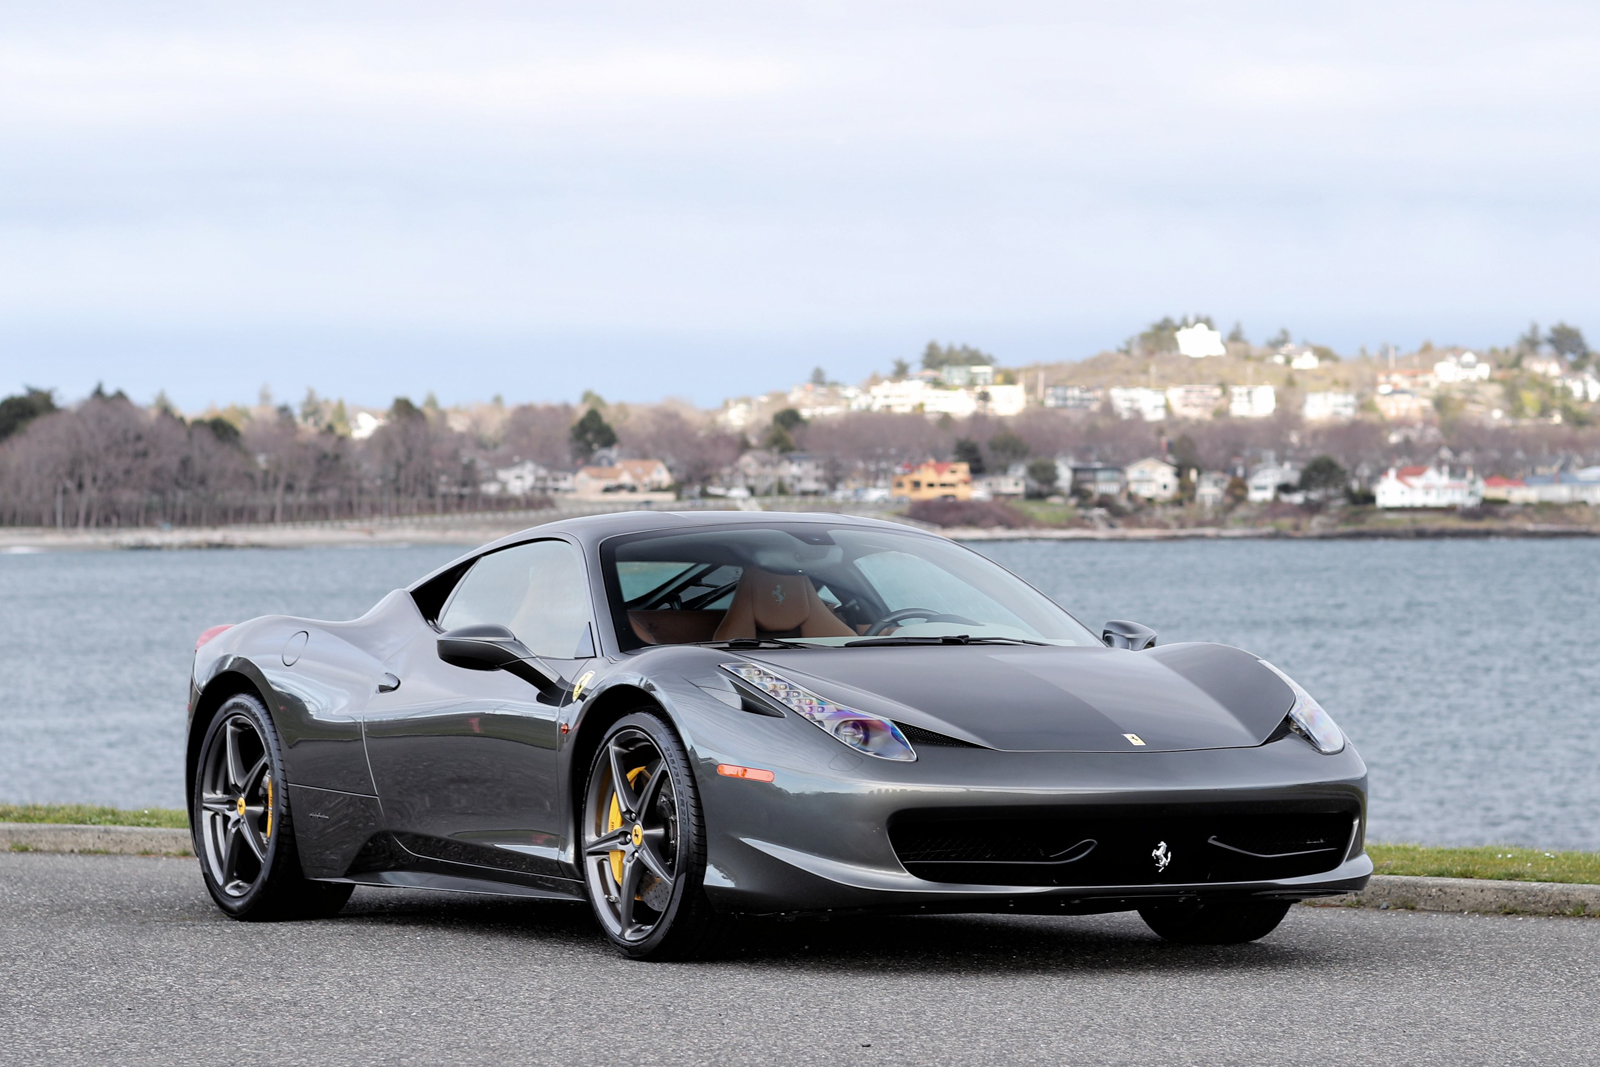 2011 ferrari 458 italia - silver arrow cars ltd.